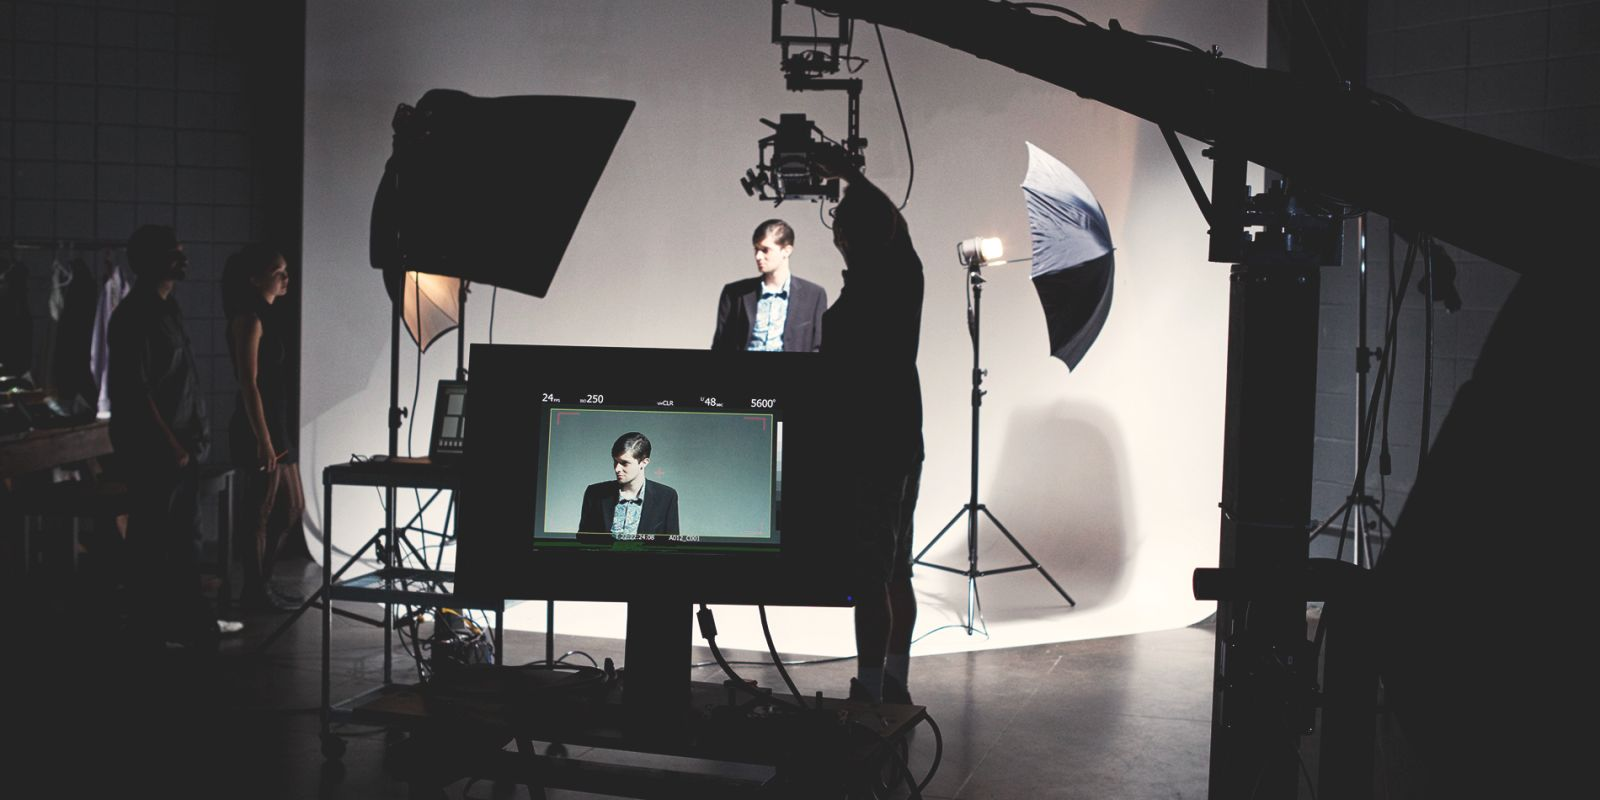 A picture of a guy on set in front of a green screen, surrounded by microphones and video cameras on the HR video production page.